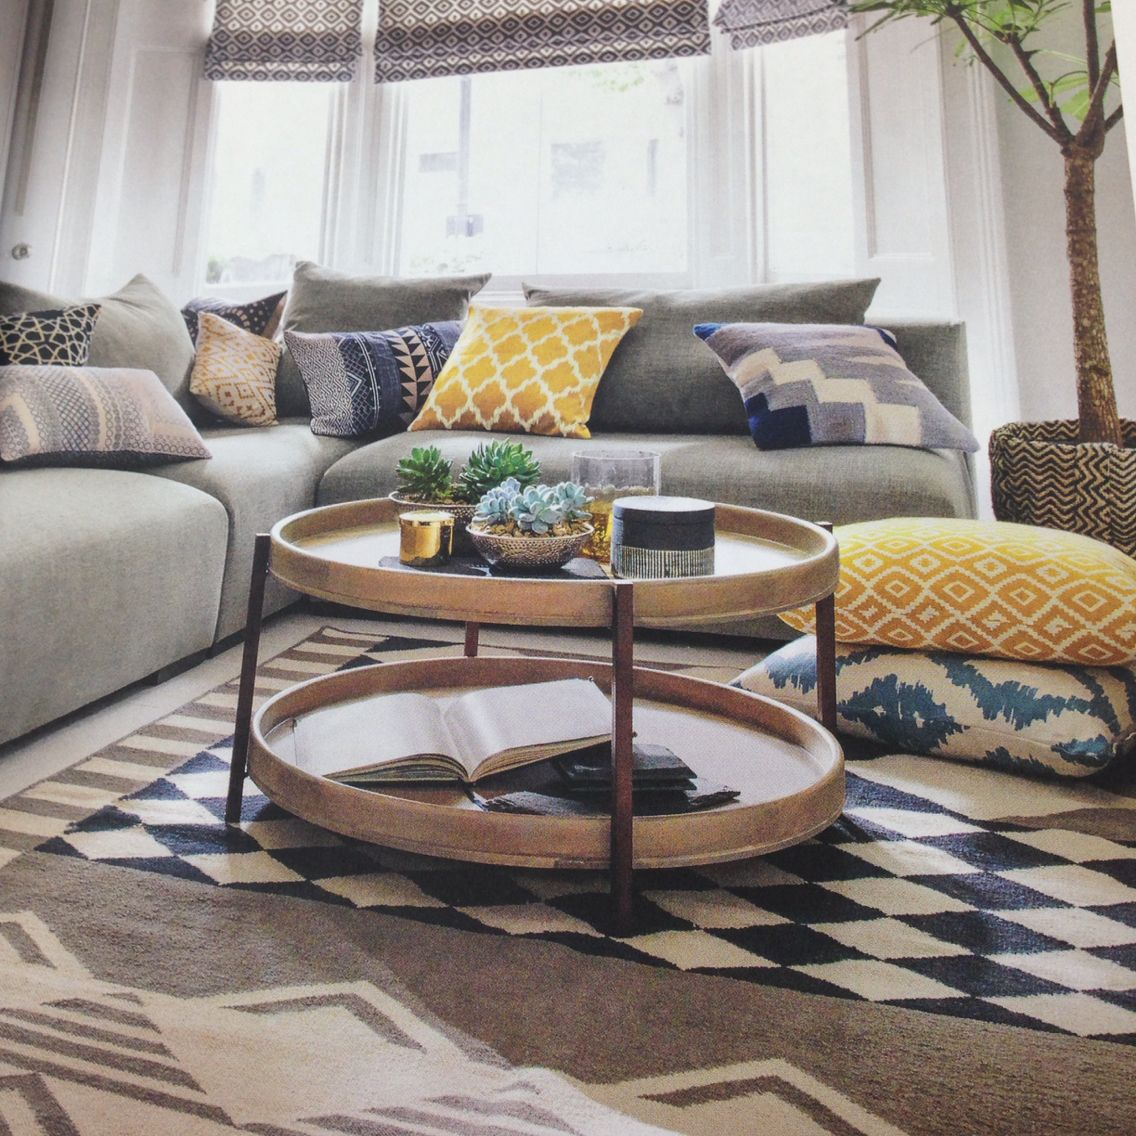 Love The Blue And Yellow Skandi Style Cushions With The Grey Sofas Colour Pop With Images Lounge Room Styling Cushions On Sofa Sofa Makeover